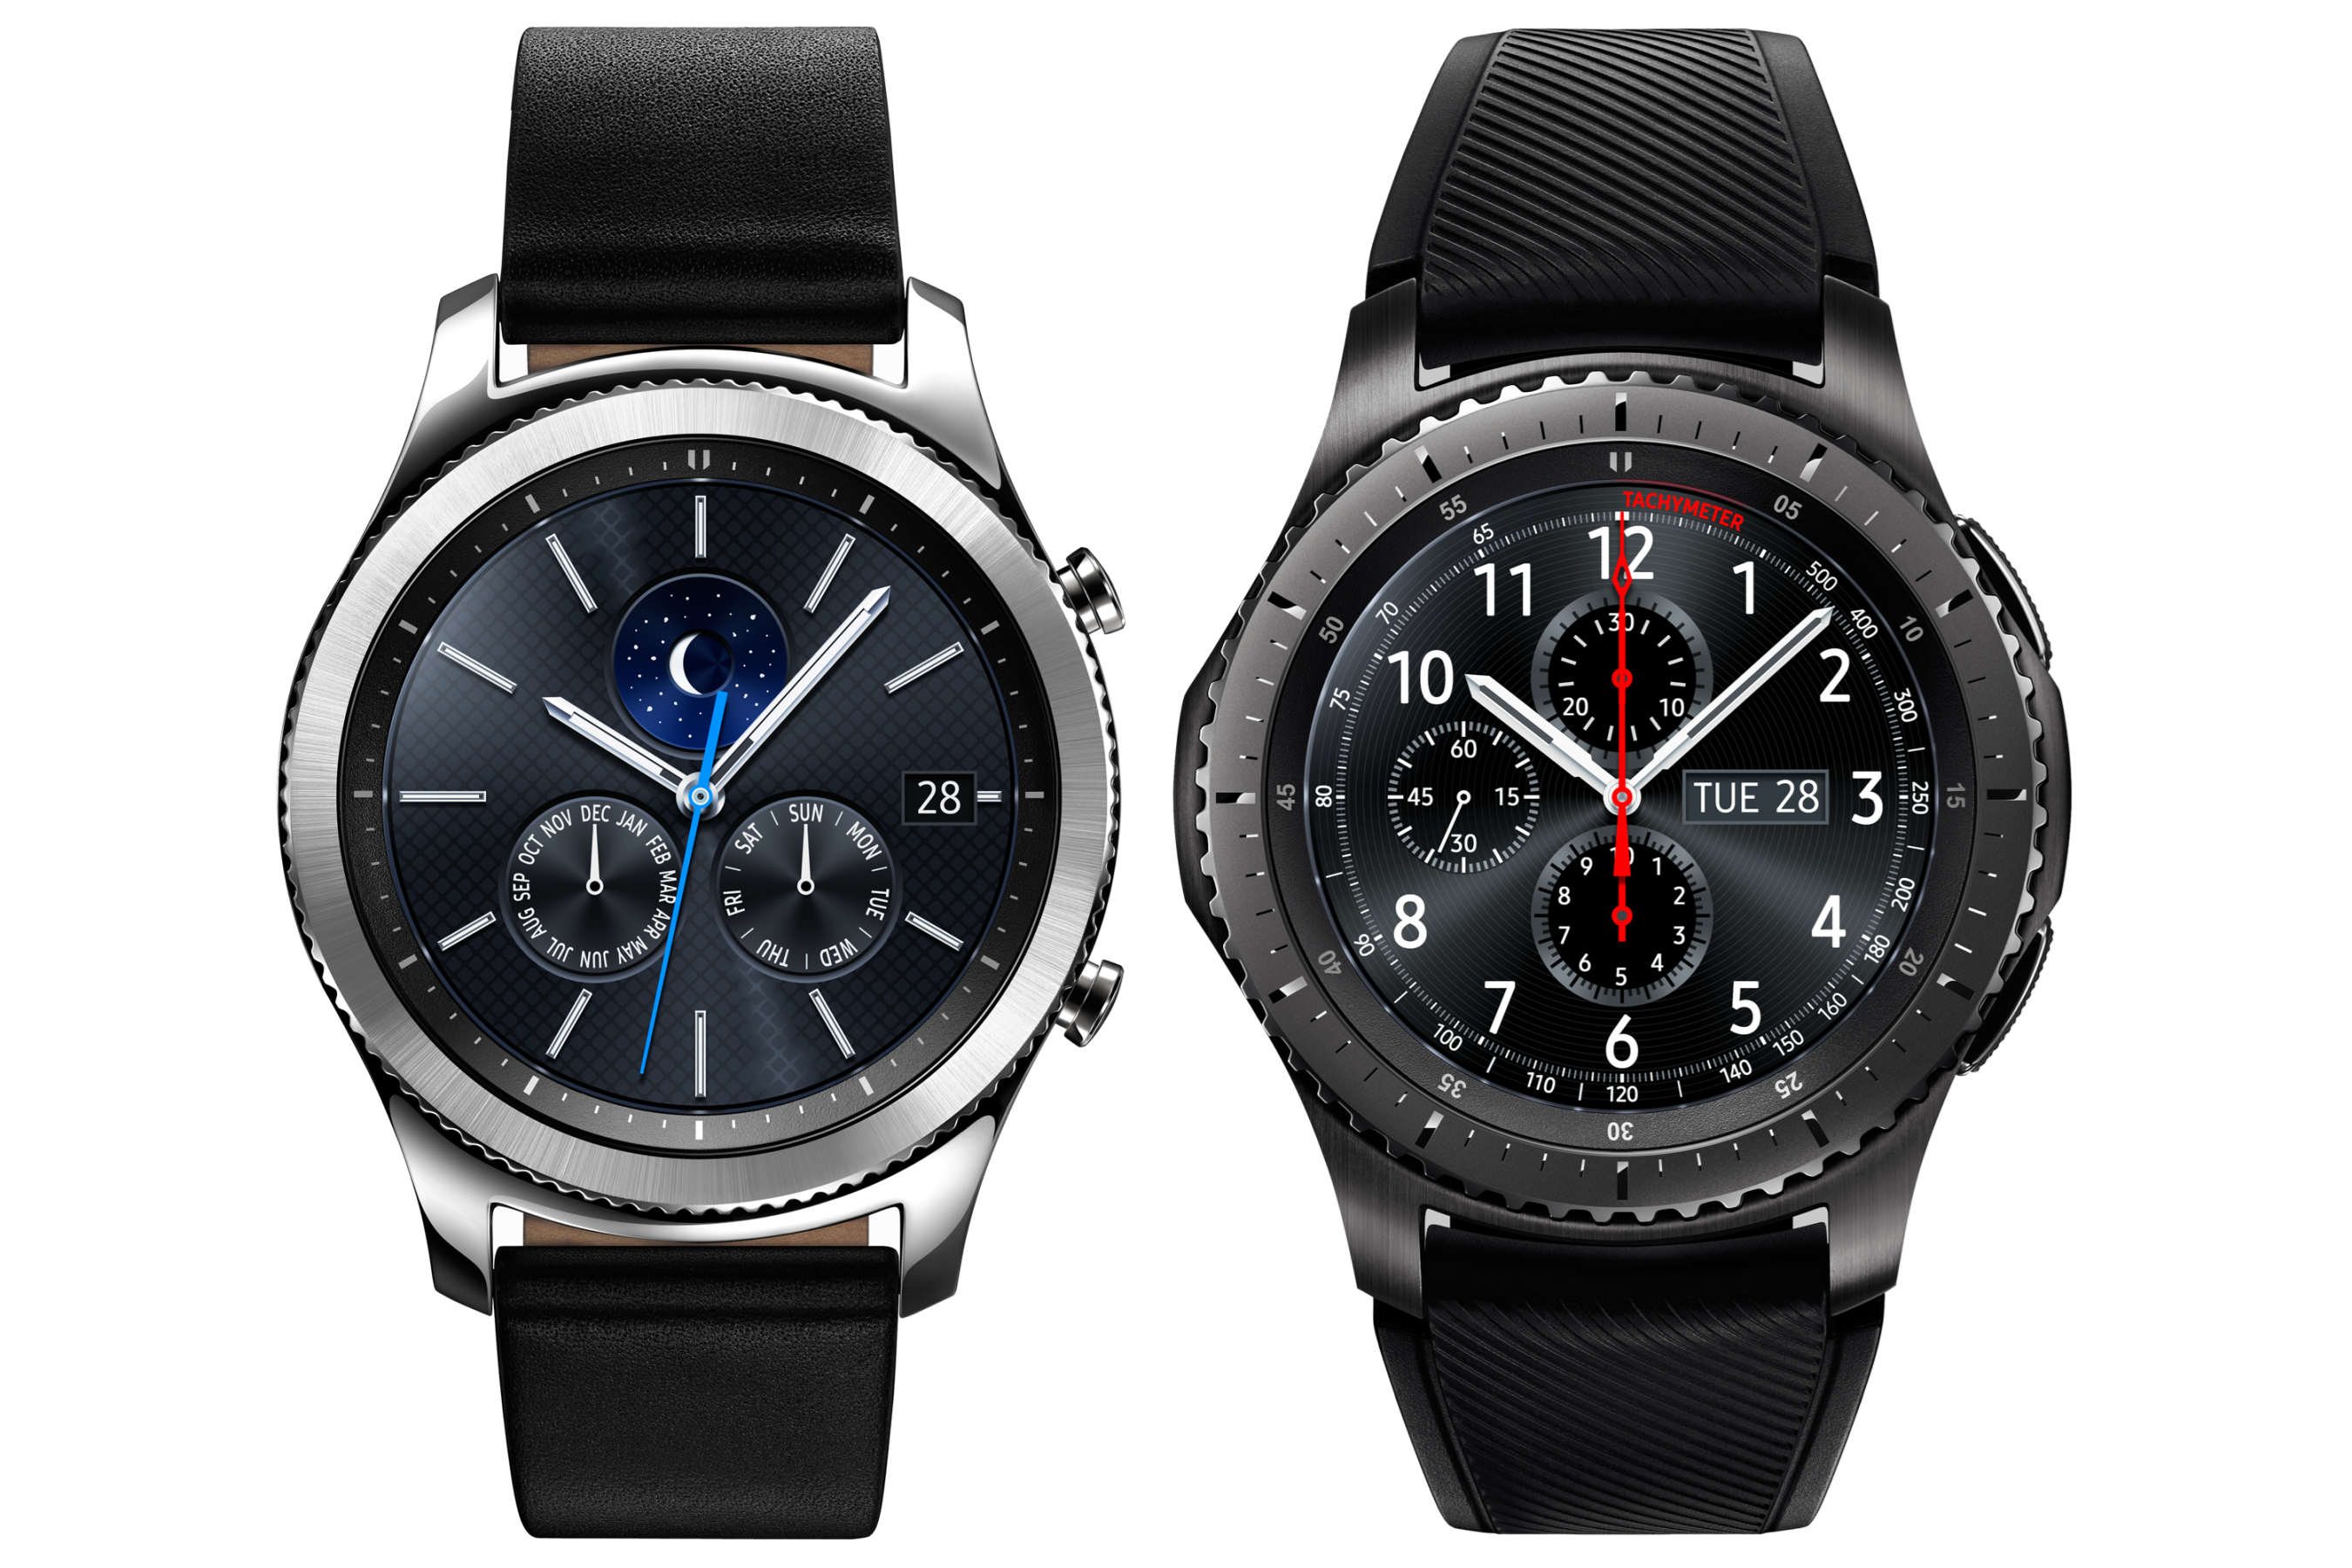 Samsung Launches Gear S3 Smartwatch in India – Samsung ...